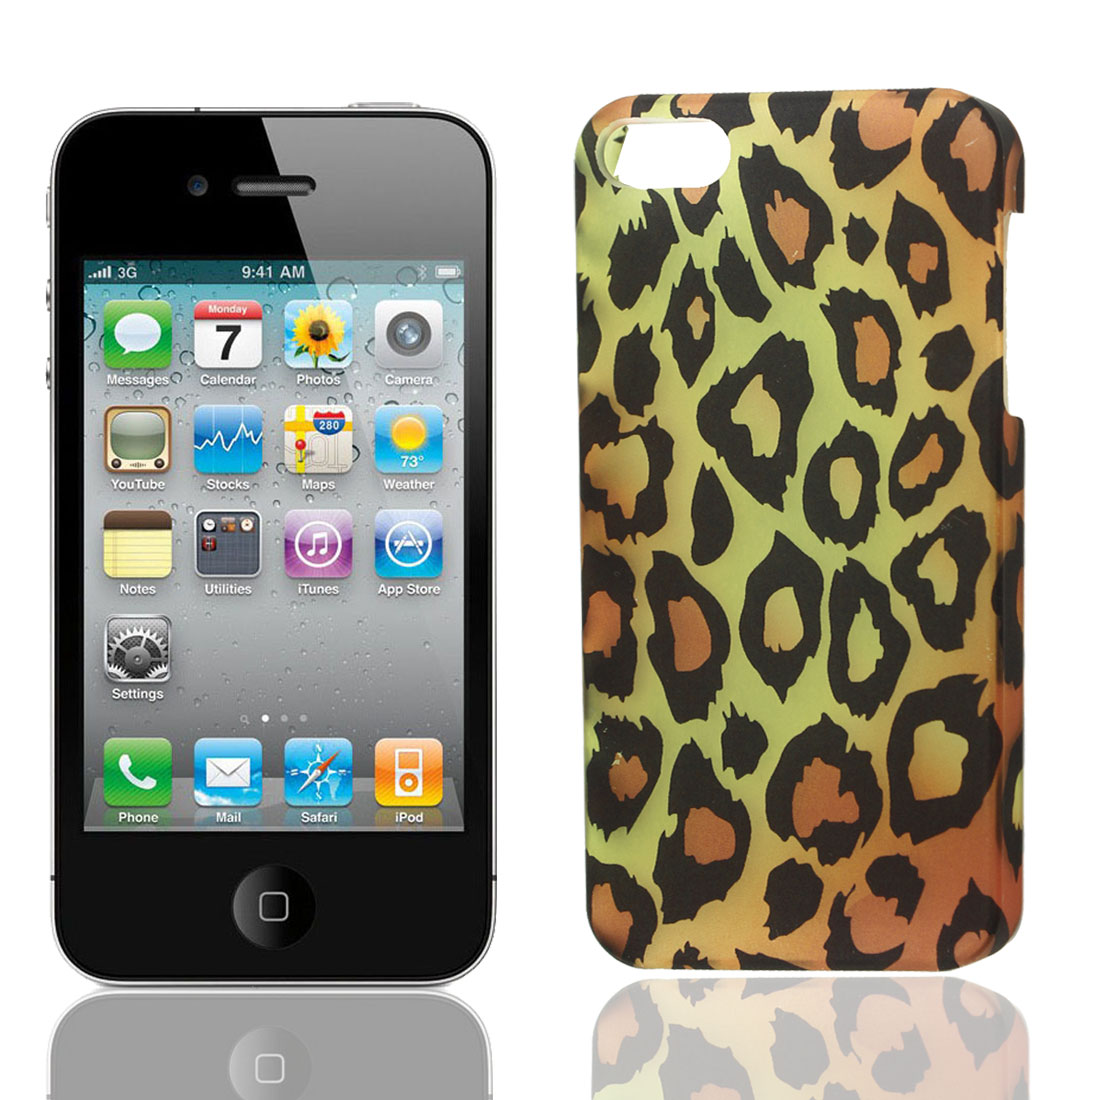 Leopard Pattren Plastic Back Case Shell Clear Yellow Black for Apple iPhone 5 5G